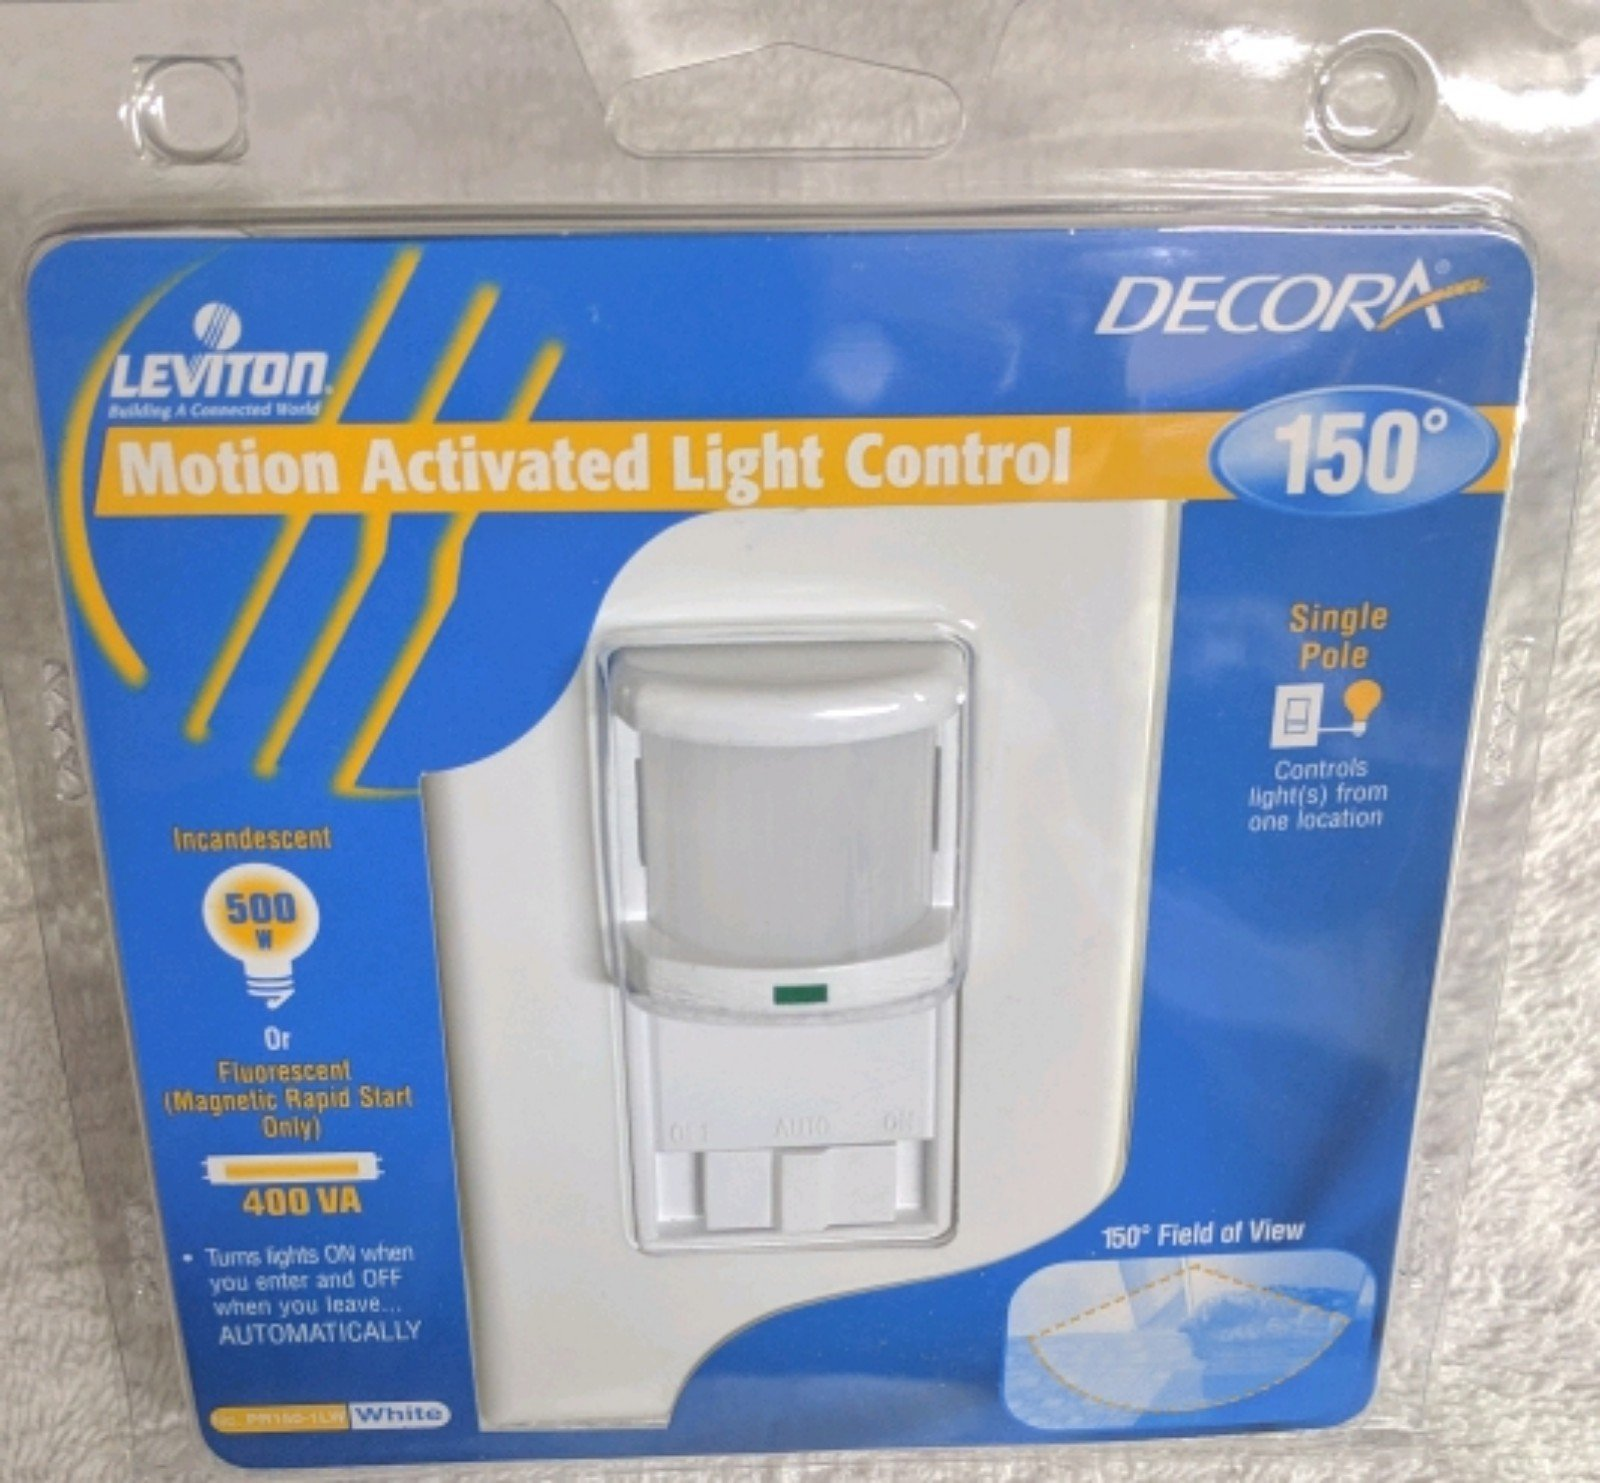 (Ship from USA) Leviton PR150-1LW 500W Single Pole 150 Degrees 350 sq. ft. Passive Infrared W /ITEM#H3NG UE-EW23D245228